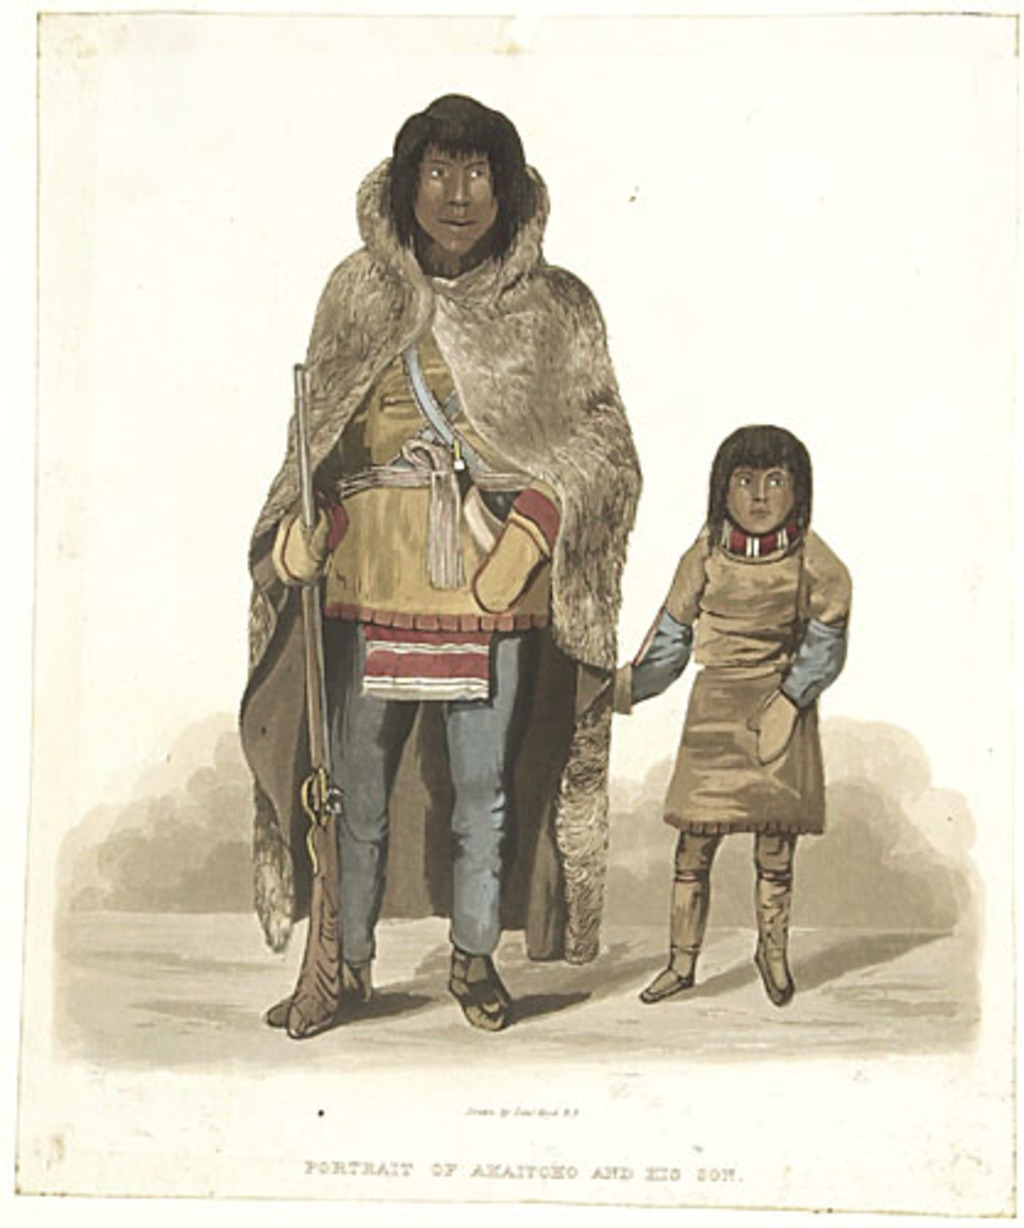 Akeitcho et son fils, extrait de l'ouvrage Narrative of a Journey to the Shores of the Polar Sea de John Franklin